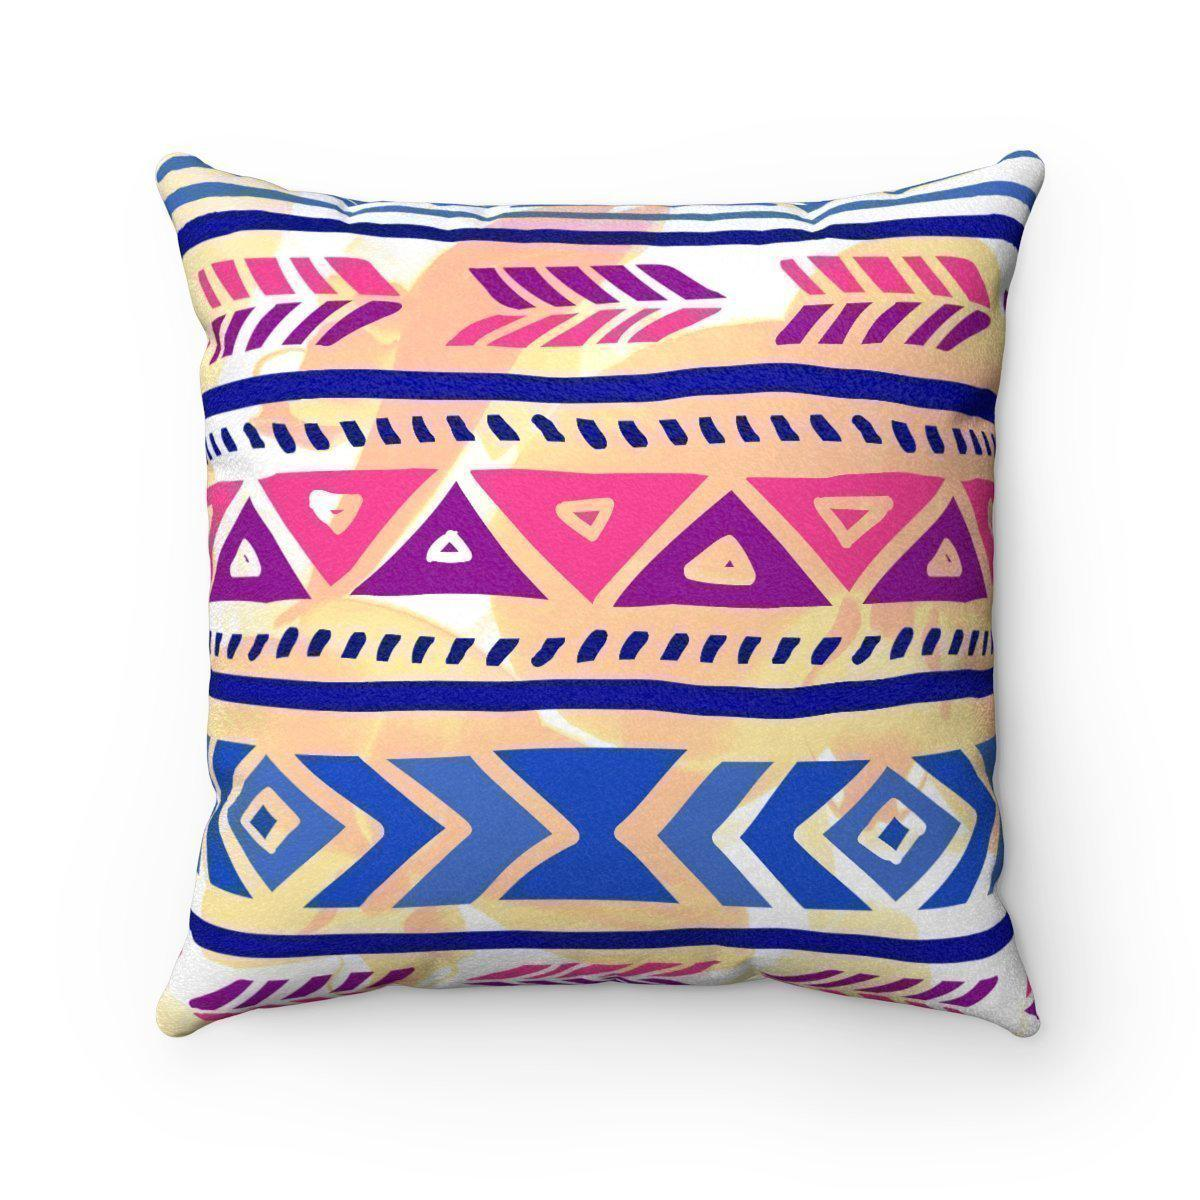 Purple Faux suede 2 in 1 Mexican decorative pillow w/insert-Home Decor - Decorative Accents - Pillows & Throws - Decorative Pillows-Maison d'Elite-Très Elite